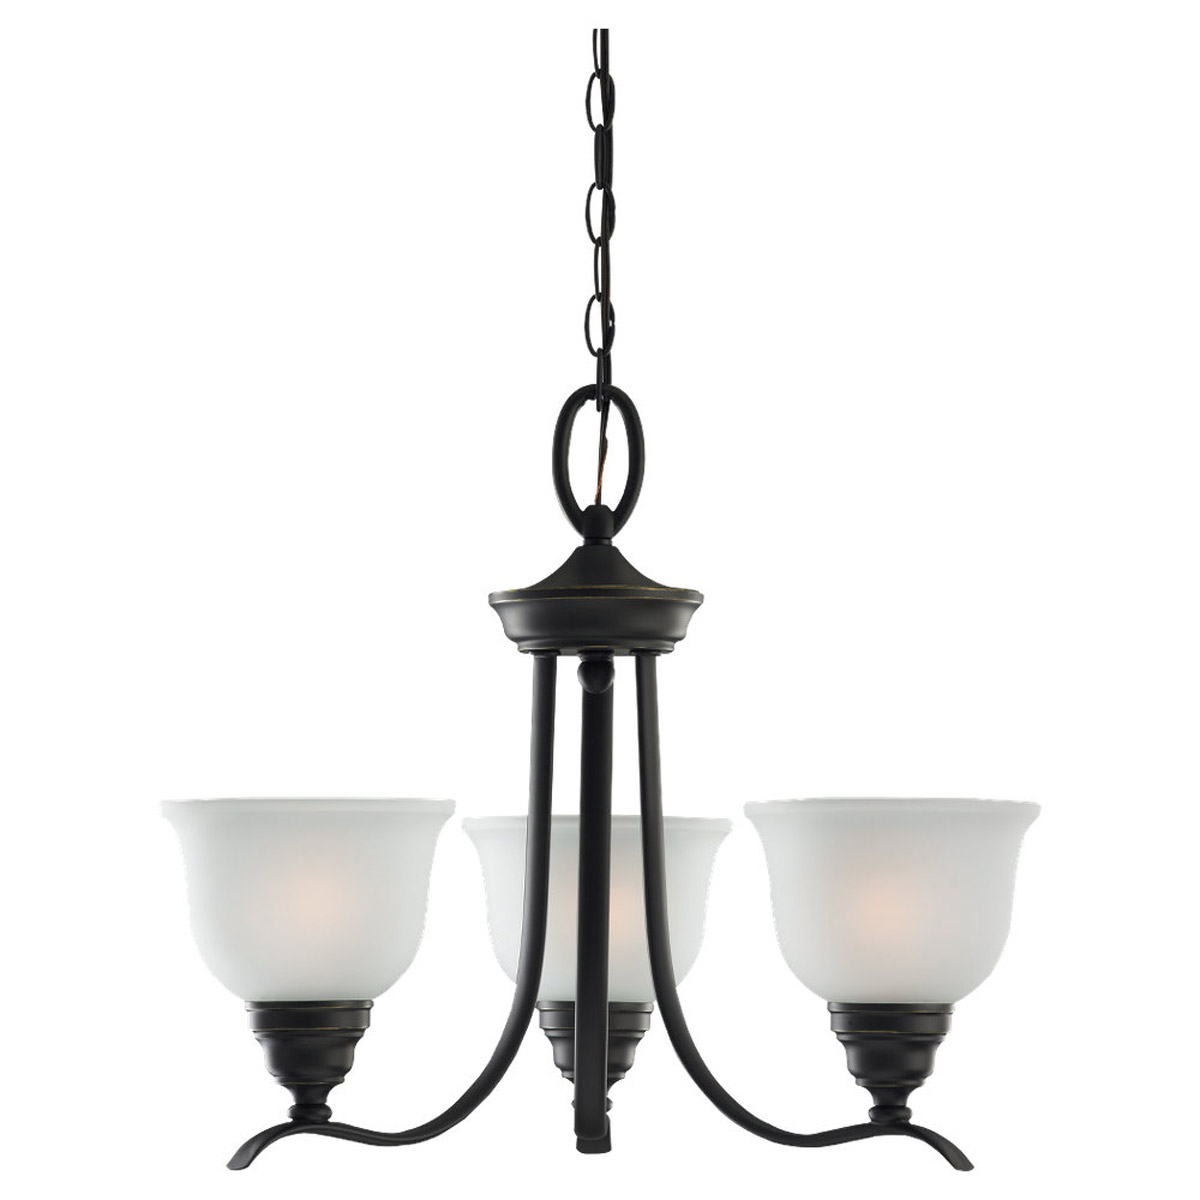 Sea Gull Lighting Wheaton 3 Light Chandelier in Heirloom Bronze 31625BLE-782 photo